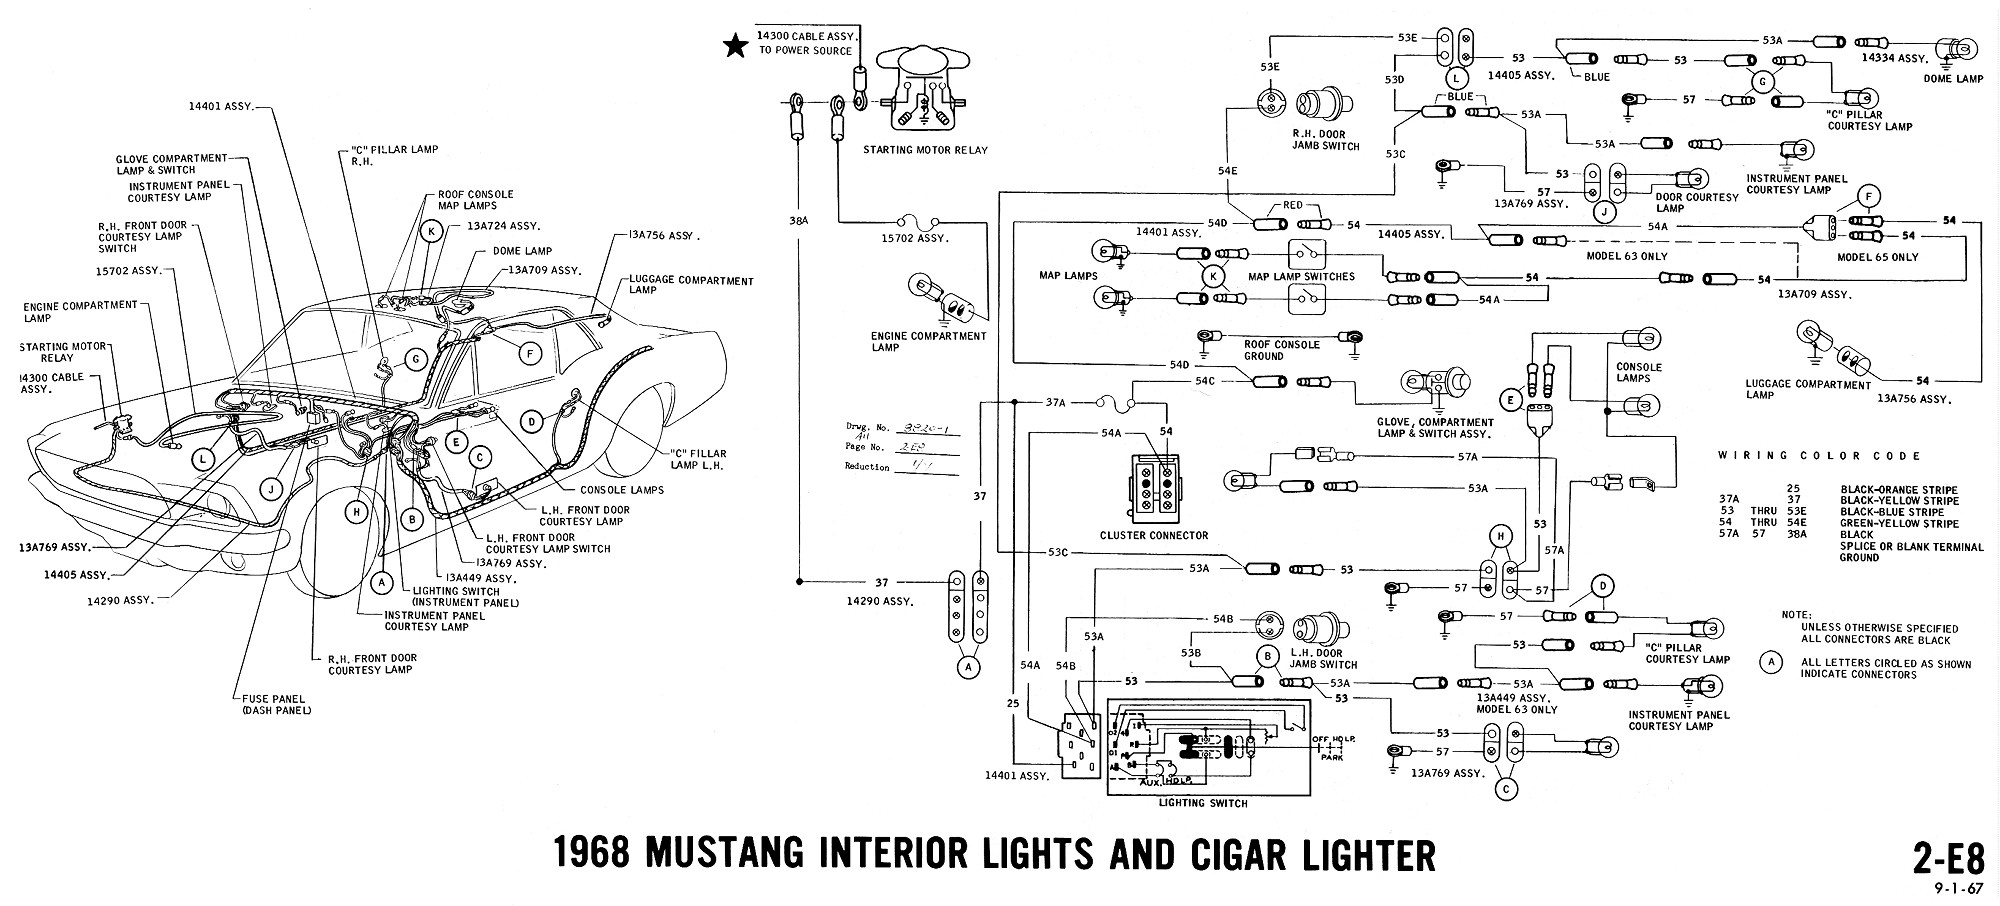 1968 mustang wiring diagram interior lights cigar lighter averagejoerestoration com wp content gallery 1968 1966 mustang starter wiring diagram at alyssarenee.co